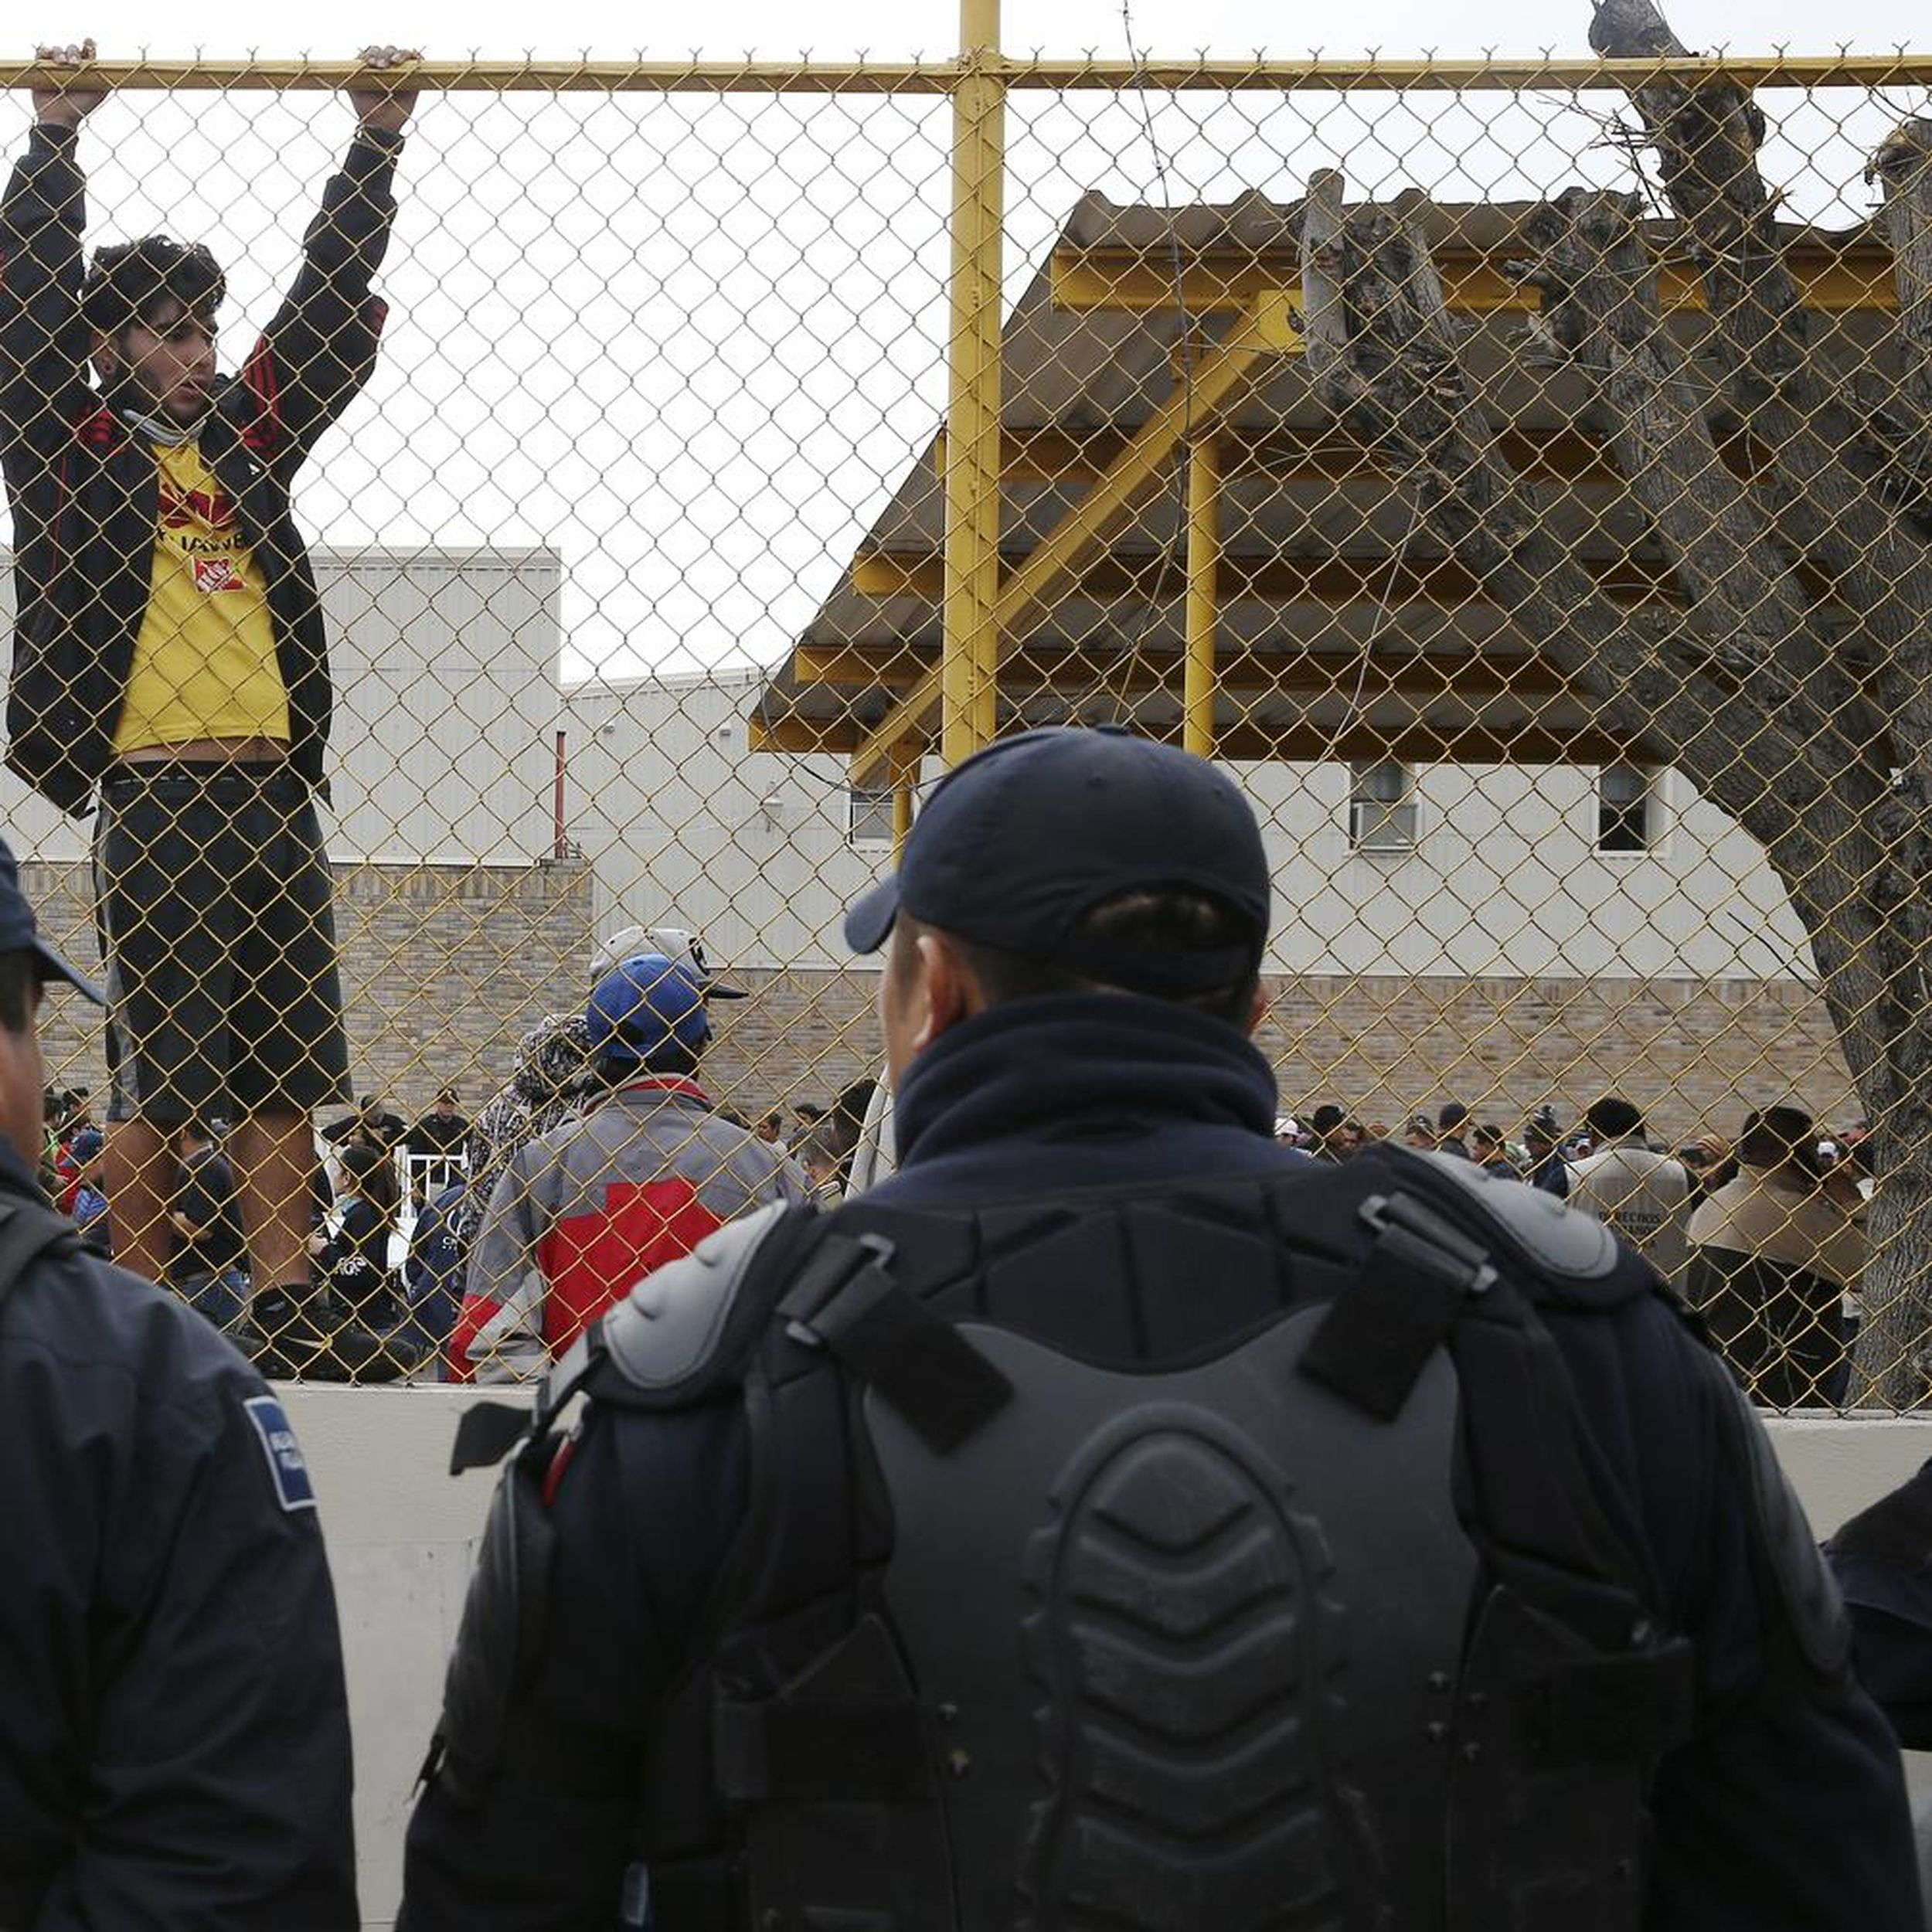 Migrant Caravan Detained In Old Factory Across From Texas The Spokesman Review